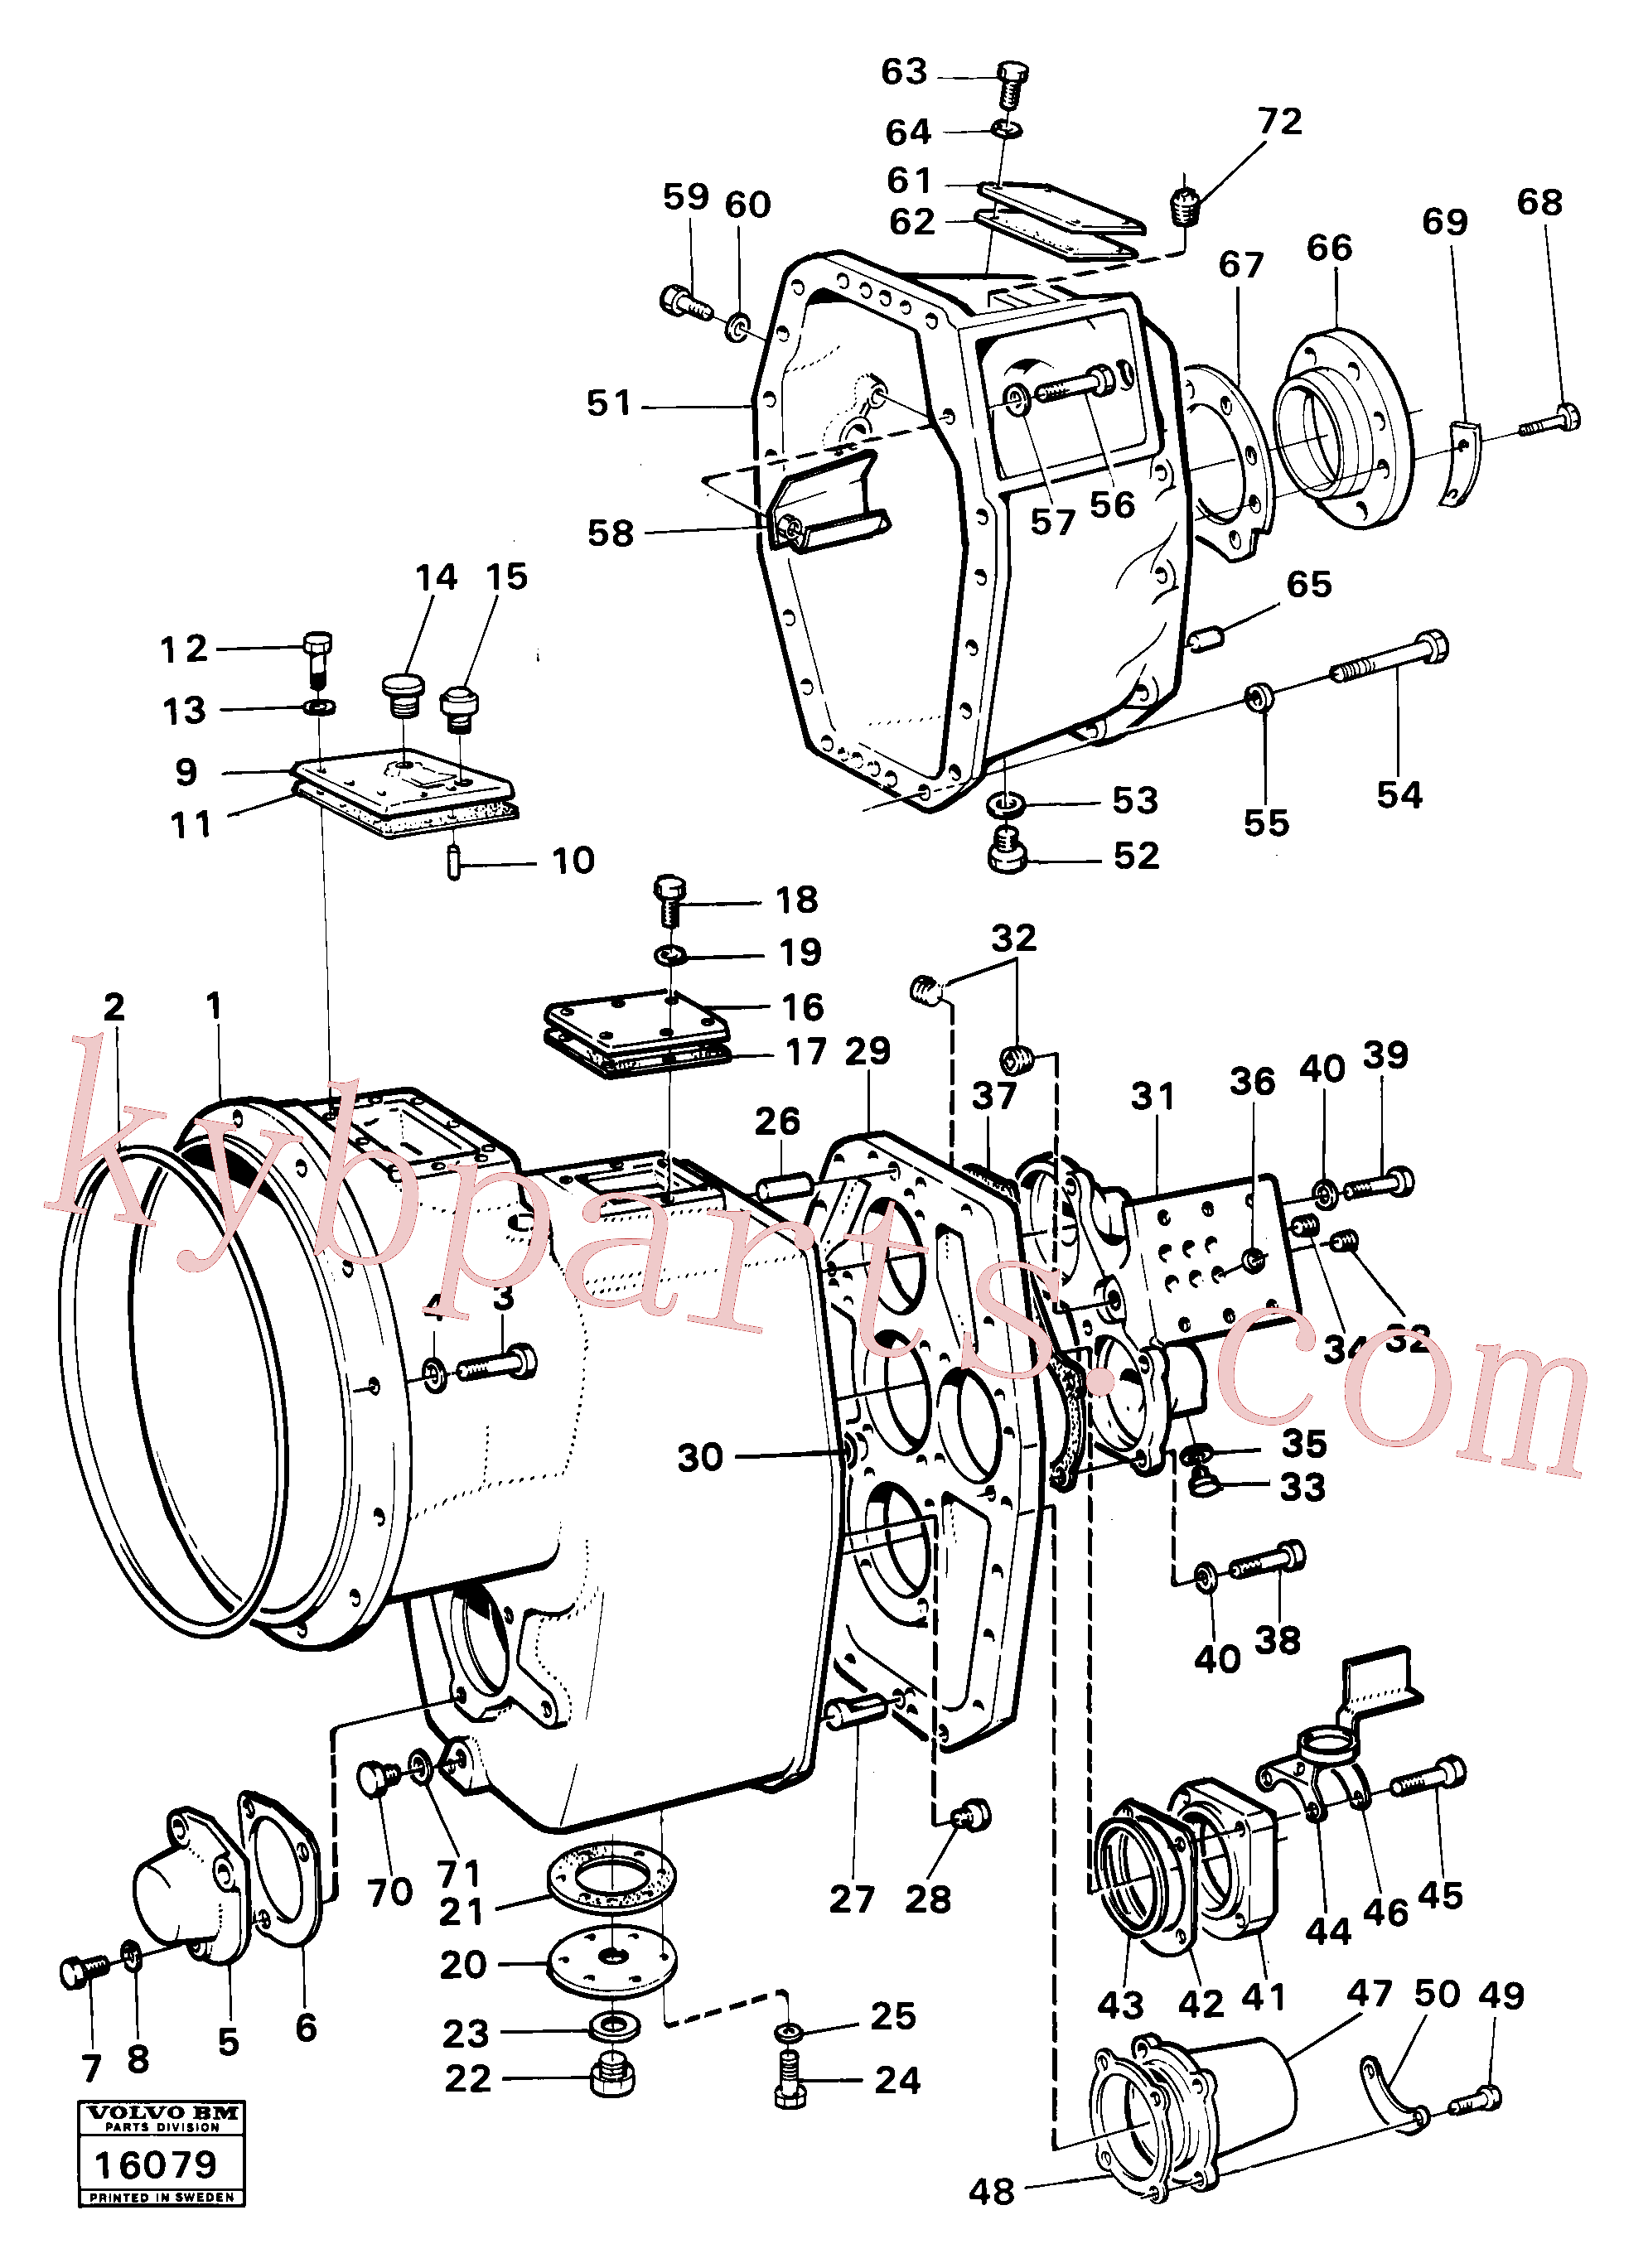 VOE955536 for Volvo Housing,covers and boltings(16079 assembly)